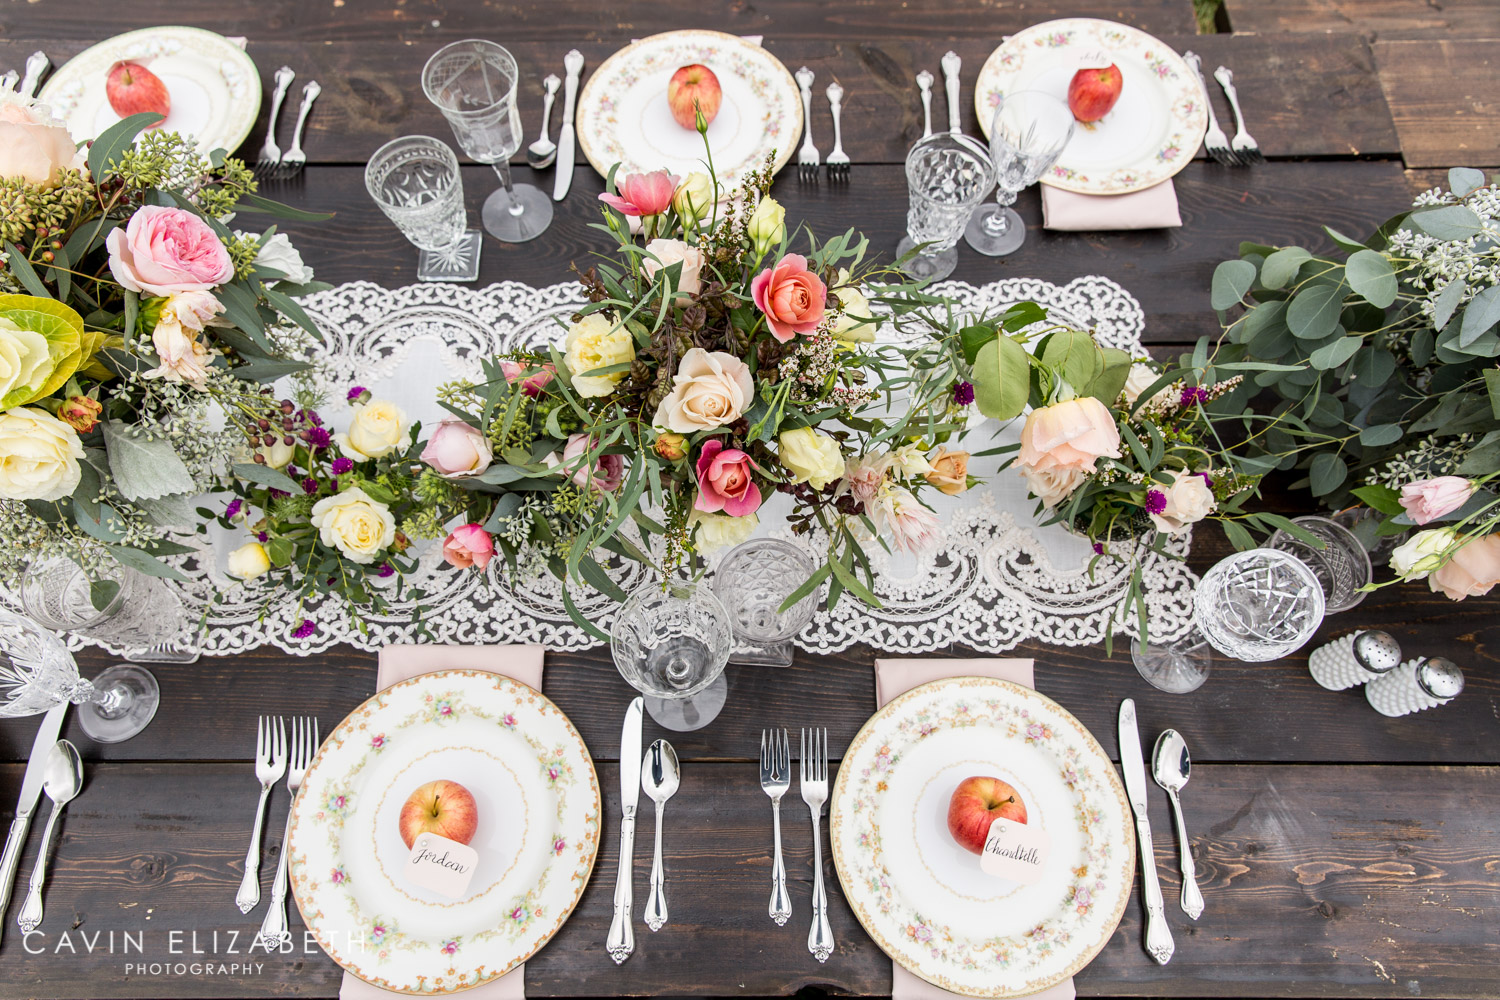 Apple Place Cards For An Outdoor Bridal Shower In San Diego With A Floral  Runner ...